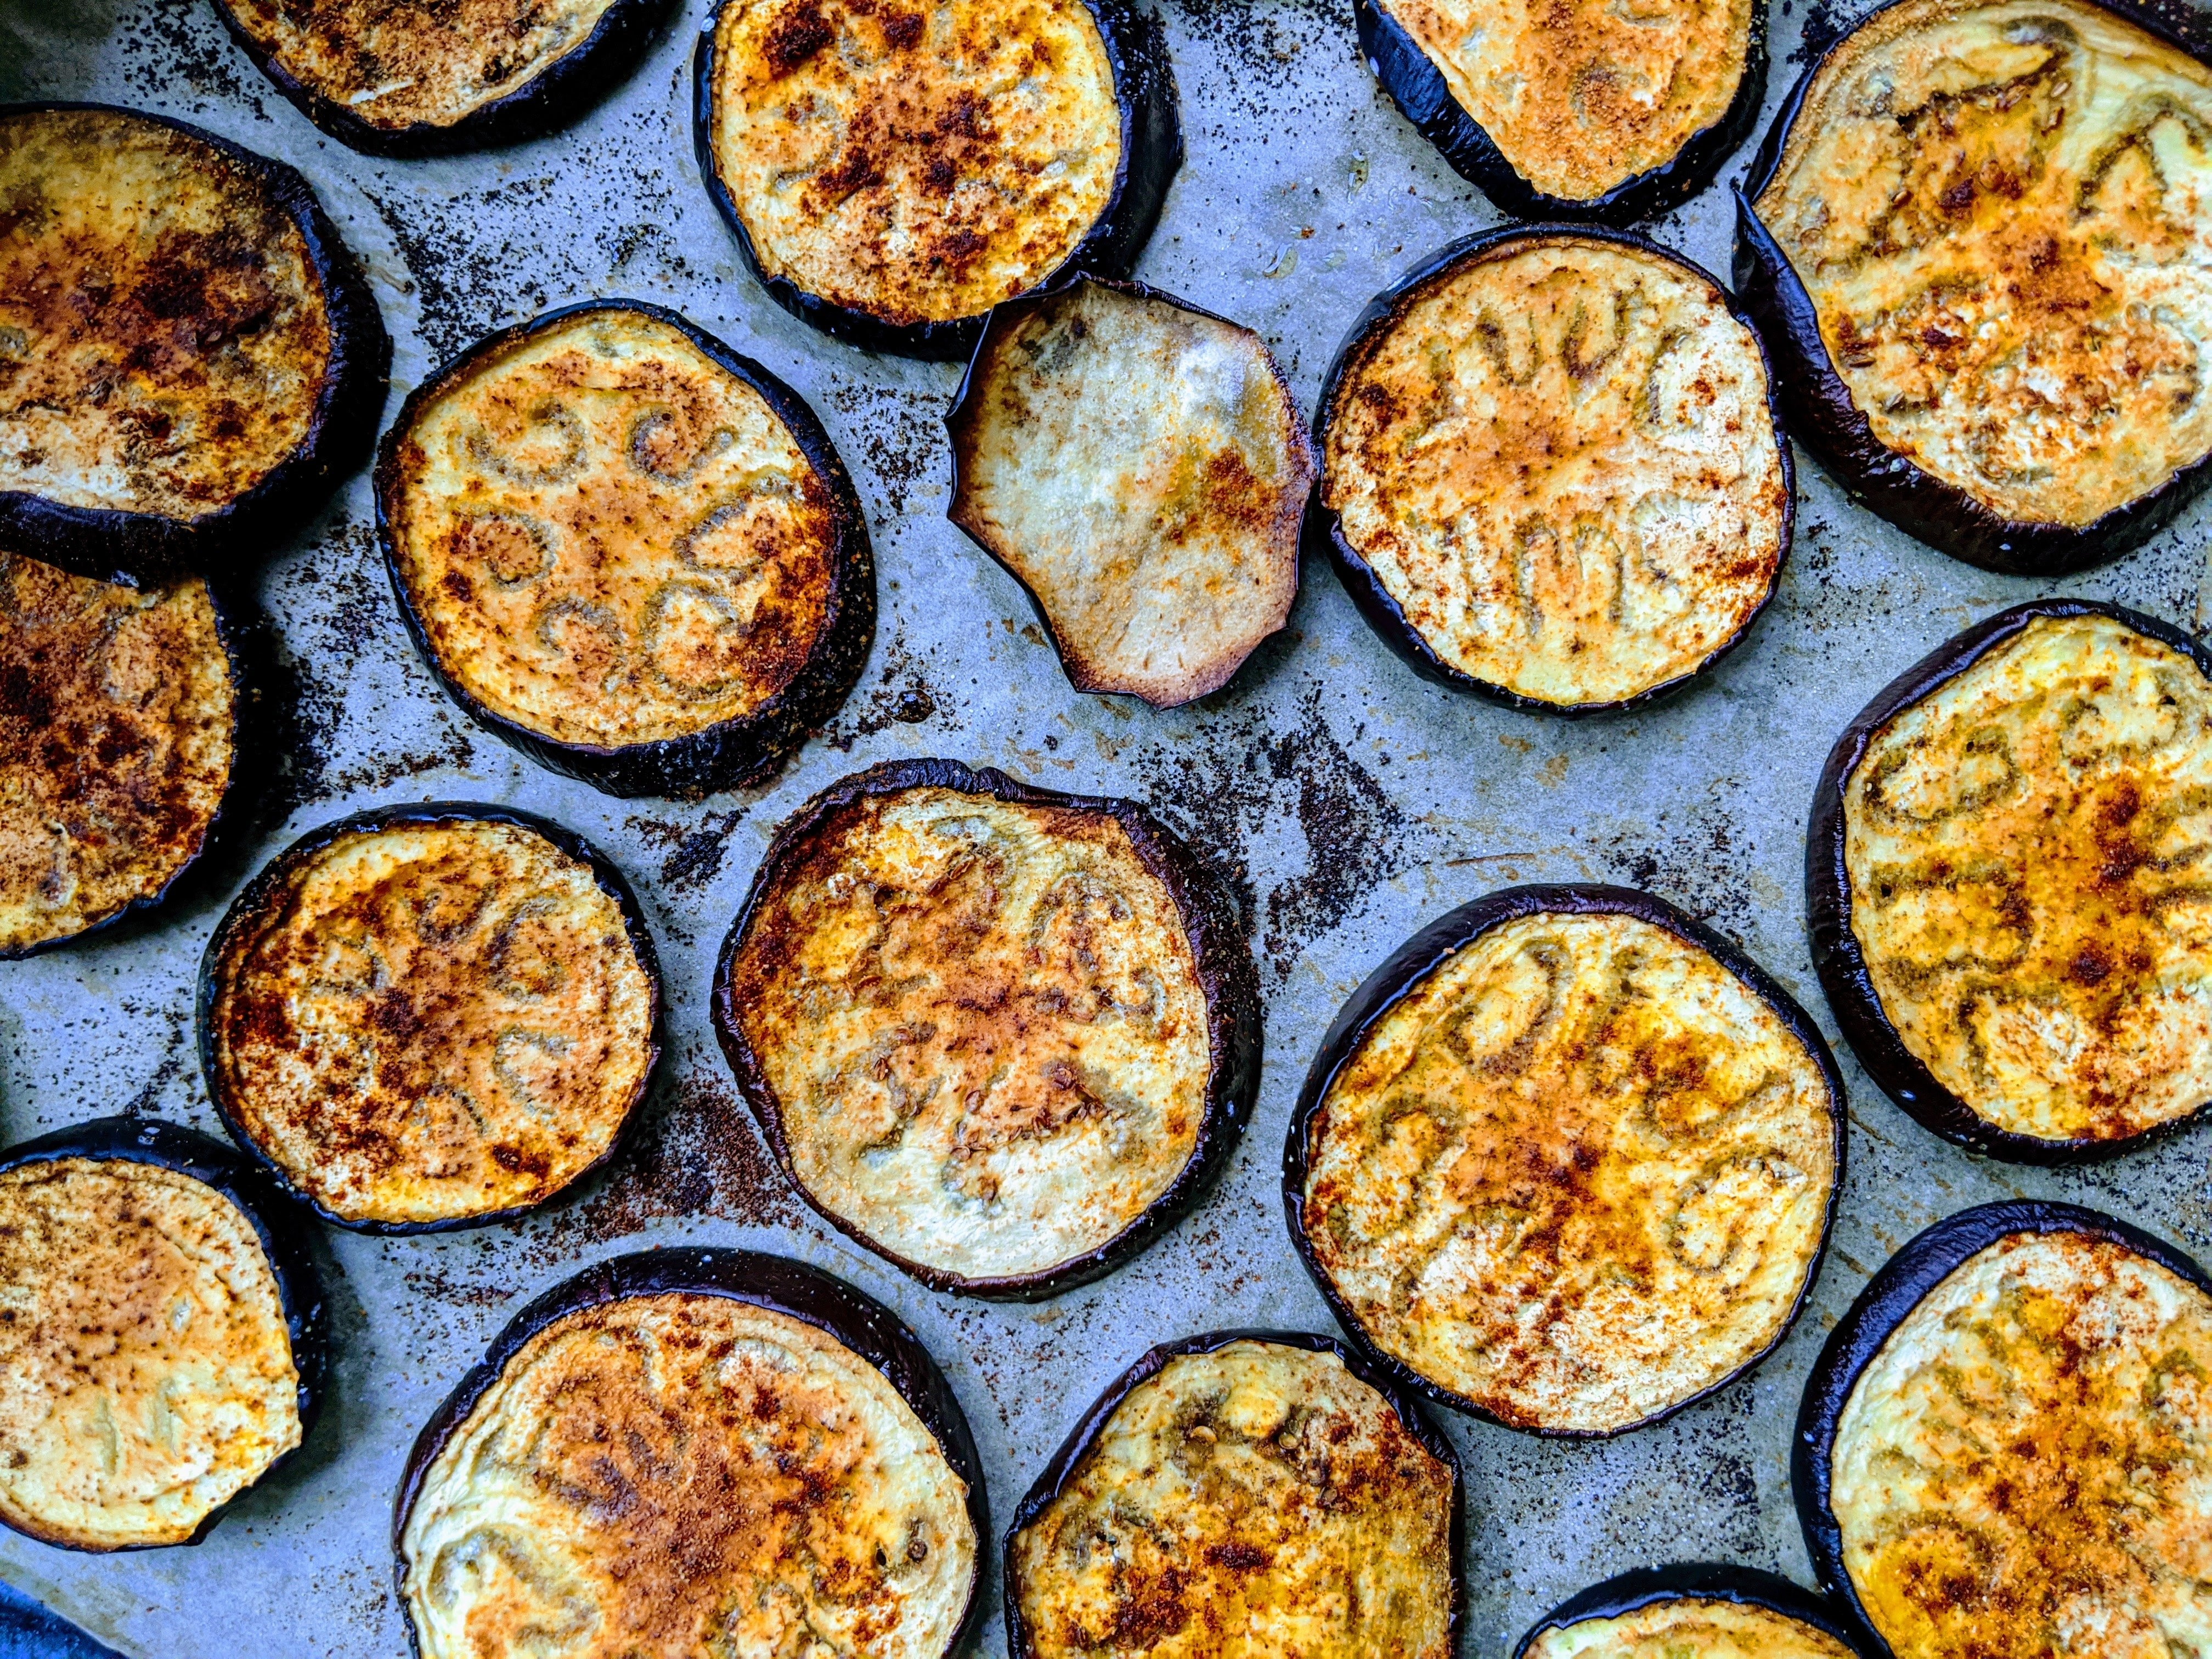 Eggplant Day: What Are the Origins of Eggplant?